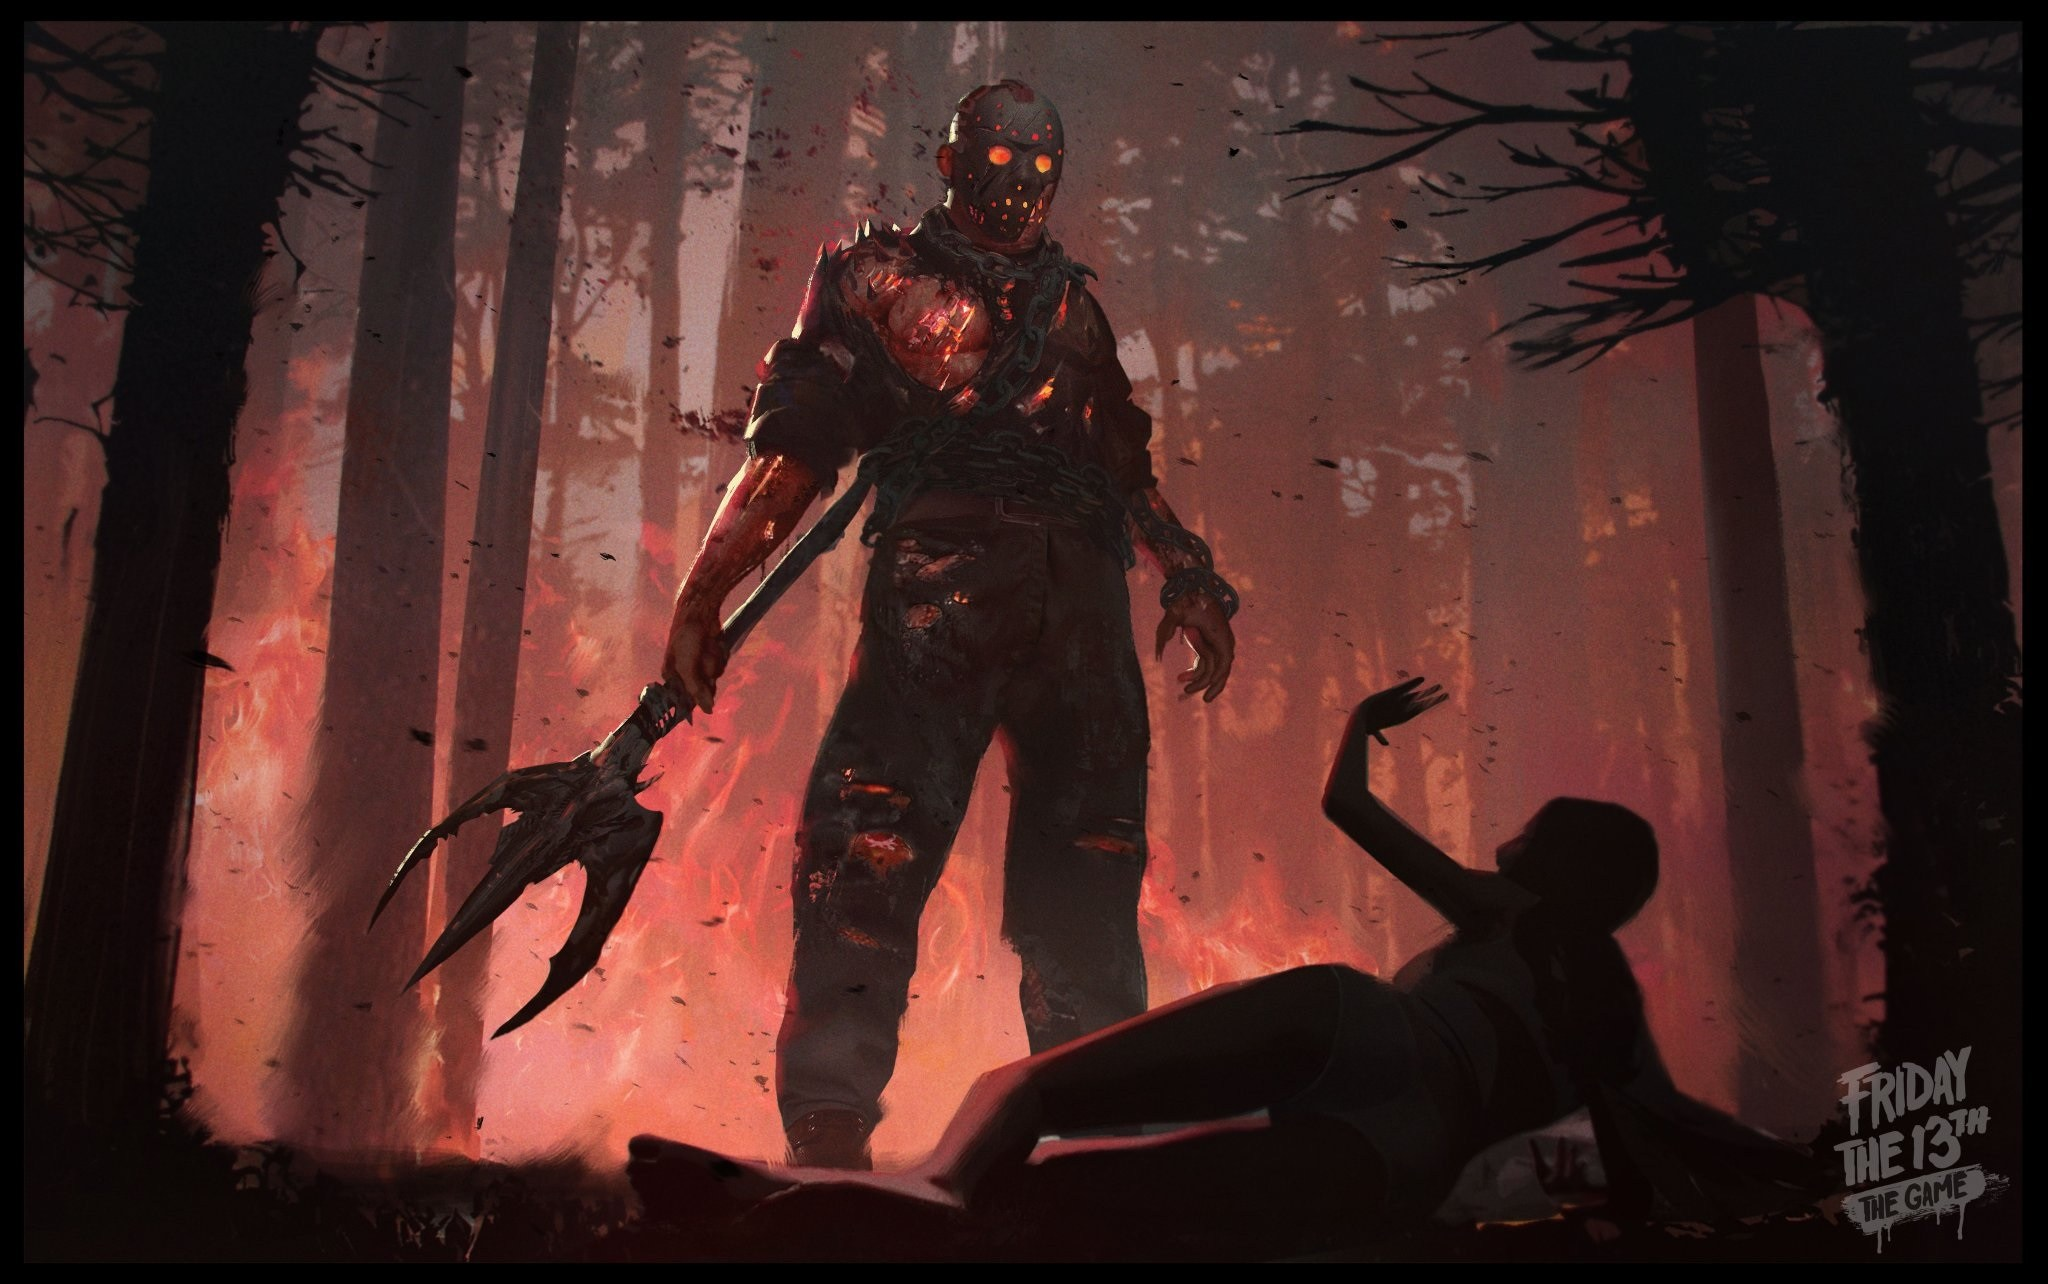 Friday The 13th The Game Hd Wallpaper Background Image 2048x1284 Id 837639 Wallpaper Abyss